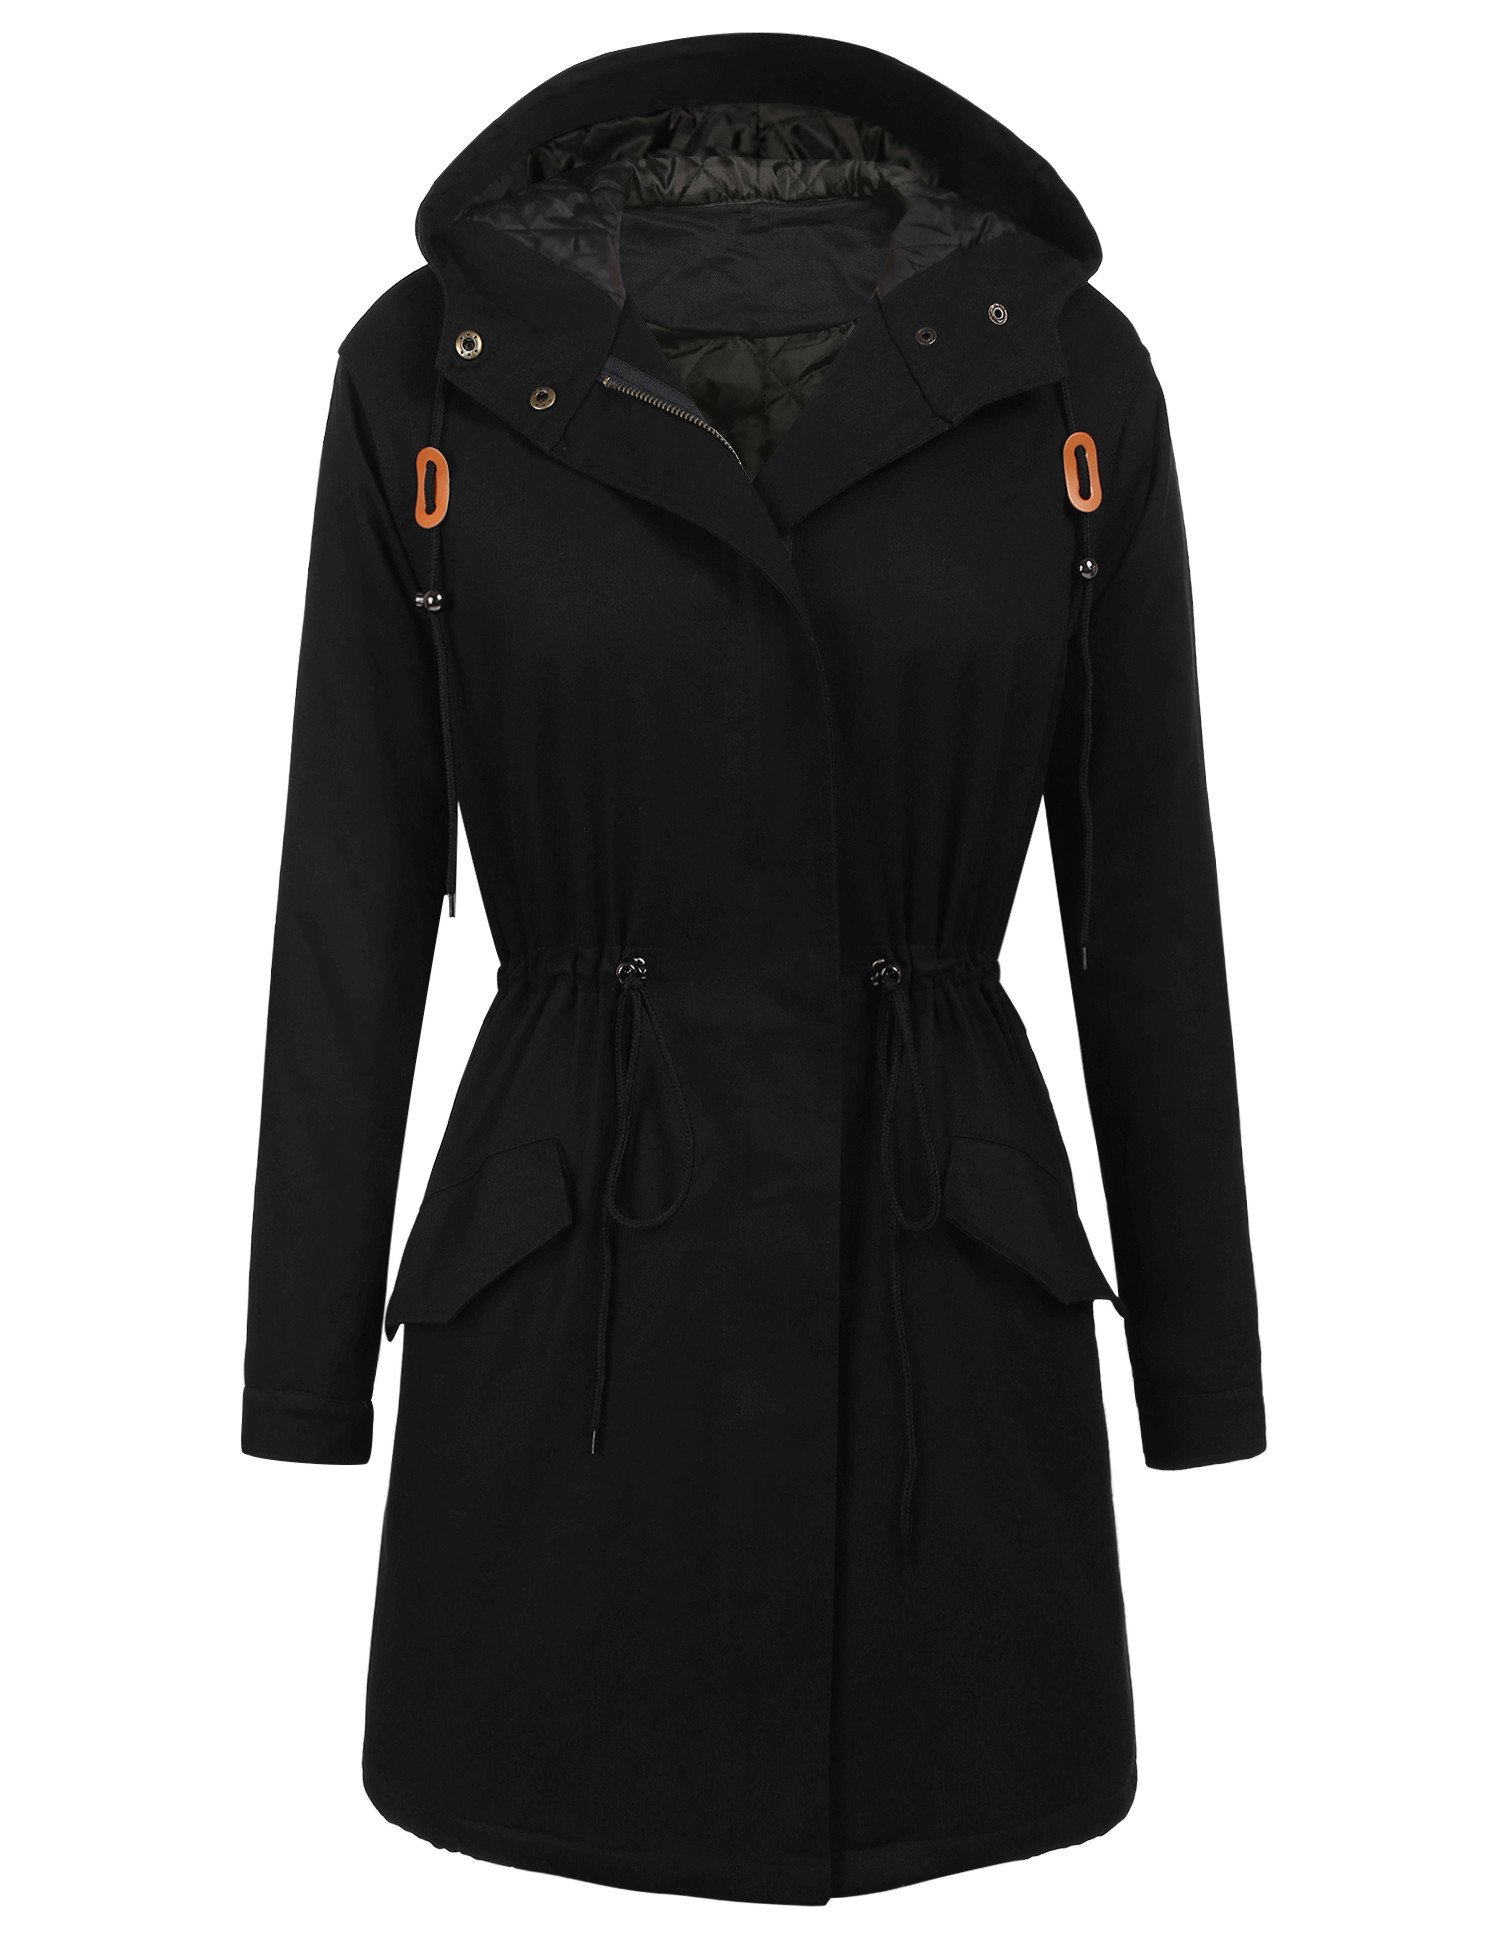 Elesol Women's Winter Hooded Anorak Safari Jacket Quilted Lined Trench Coats Black/XL